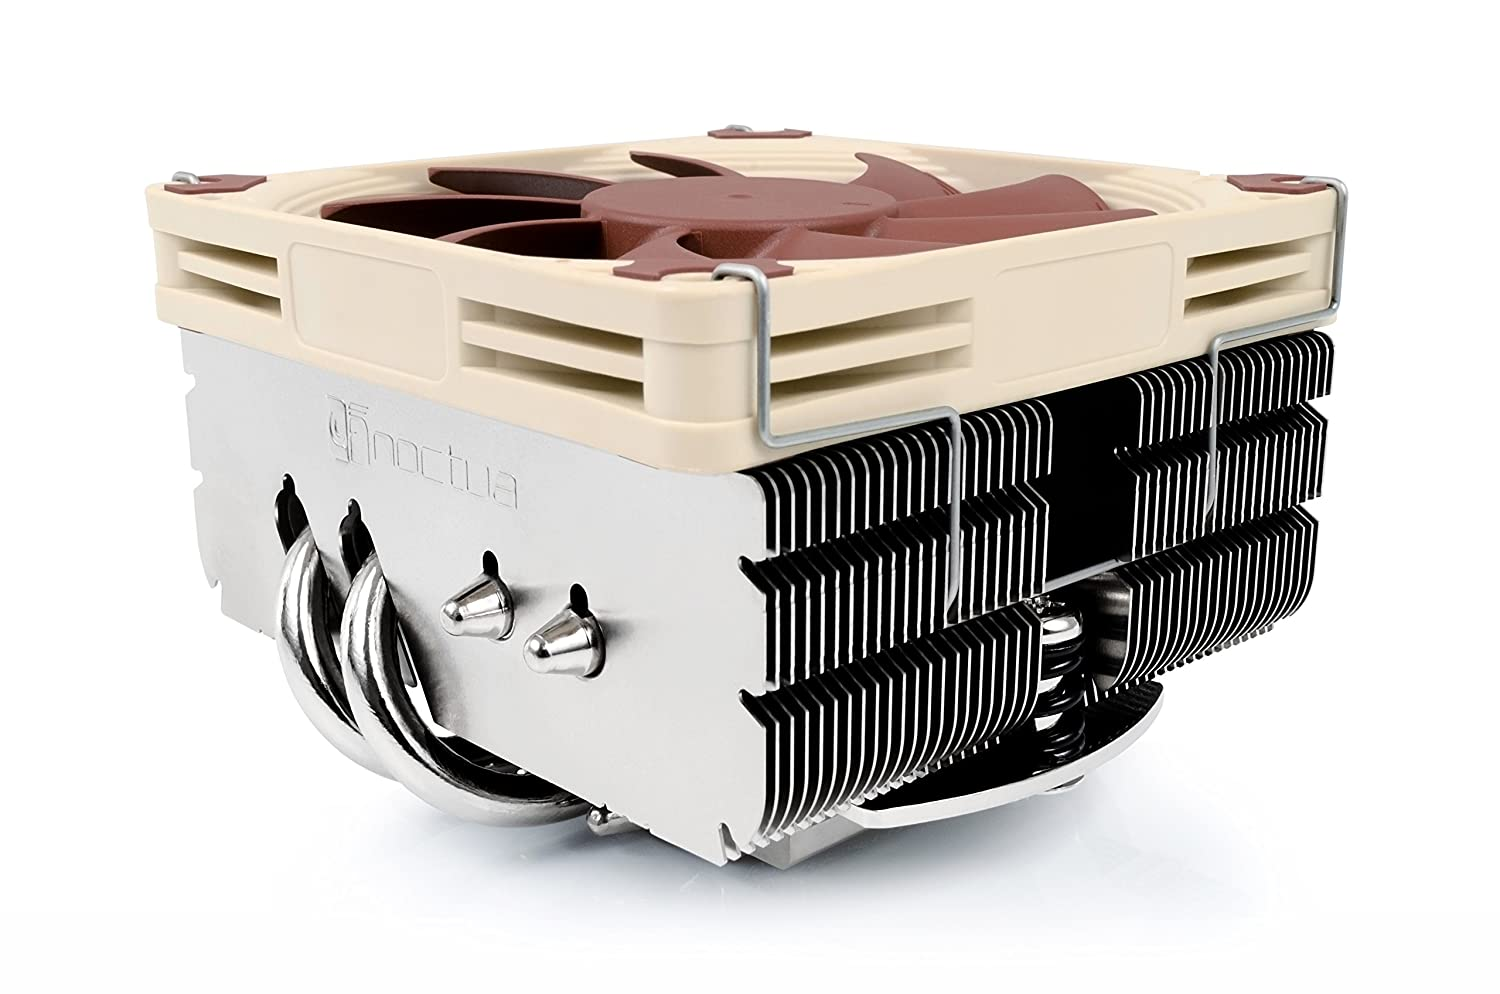 Noctua NH-L9x65, 65mm Premium Low-Profile CPU Cooler (Brown)